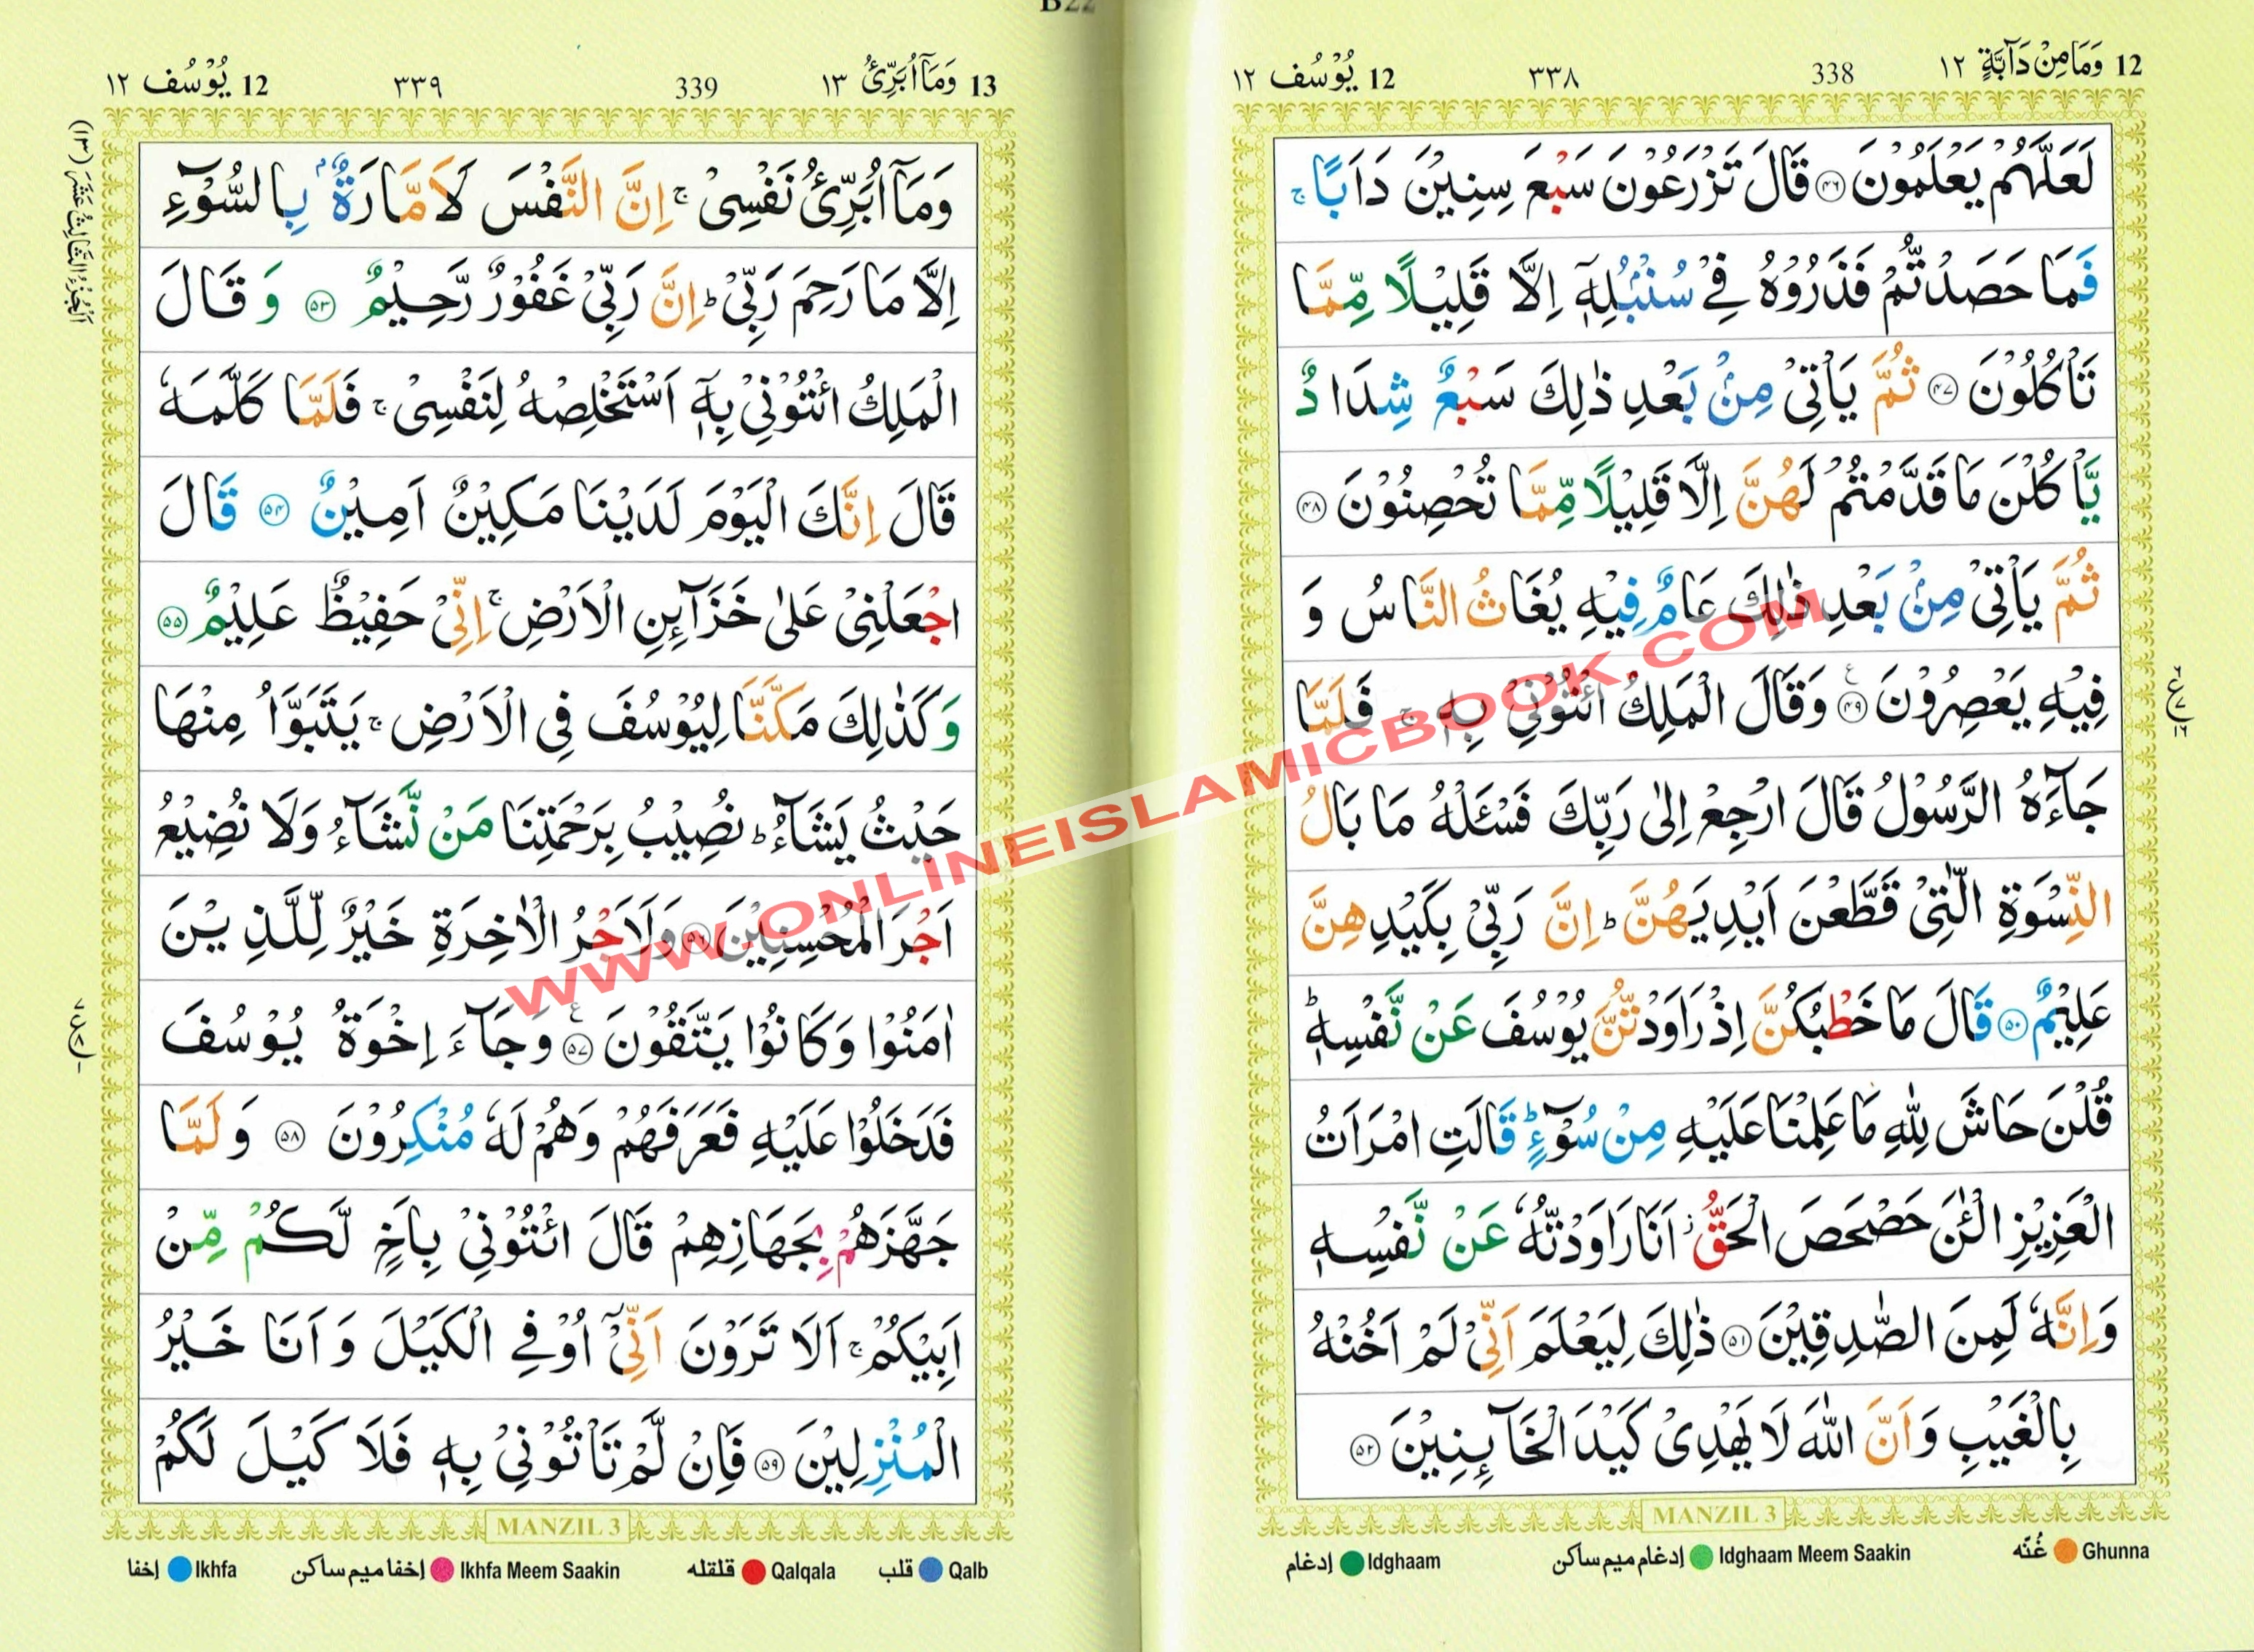 -the-holy-quran-with-colour-coded-tajweed-rules-medium-size-6-.jpg